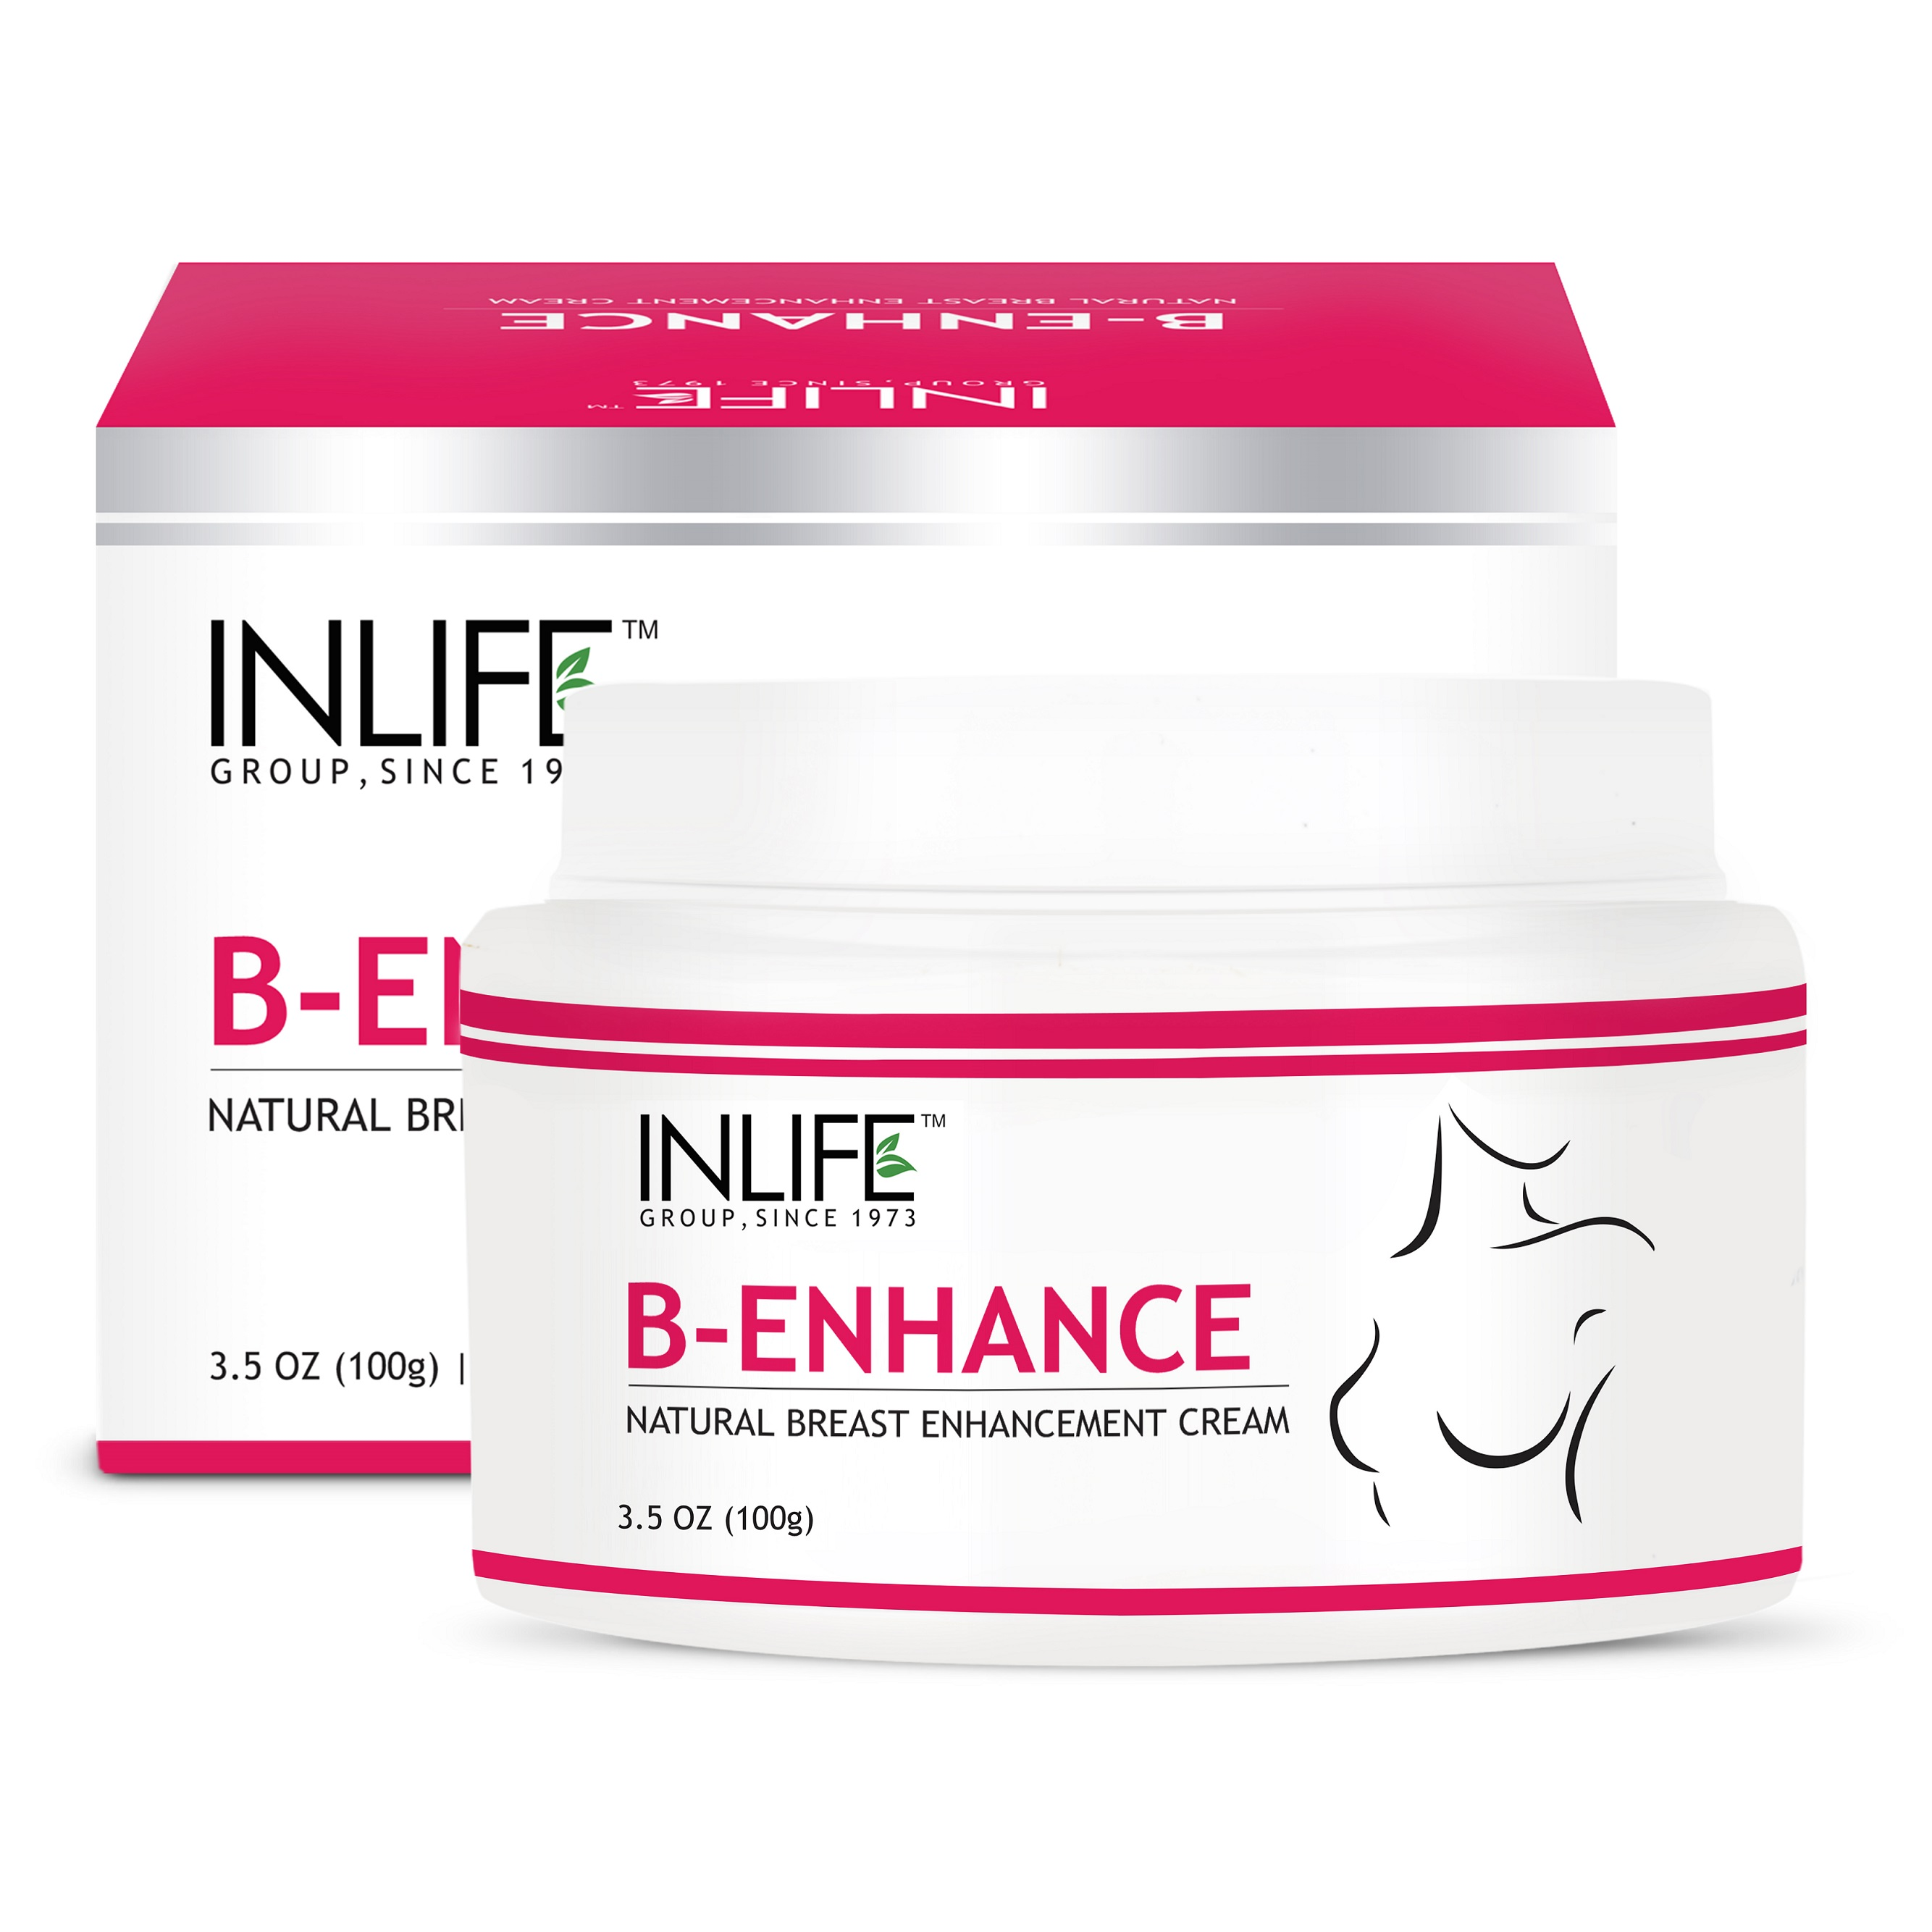 INLIFE Natural Breast Enlargement Cream For Improvement in Breast Size  available at Nykaa for Rs.405